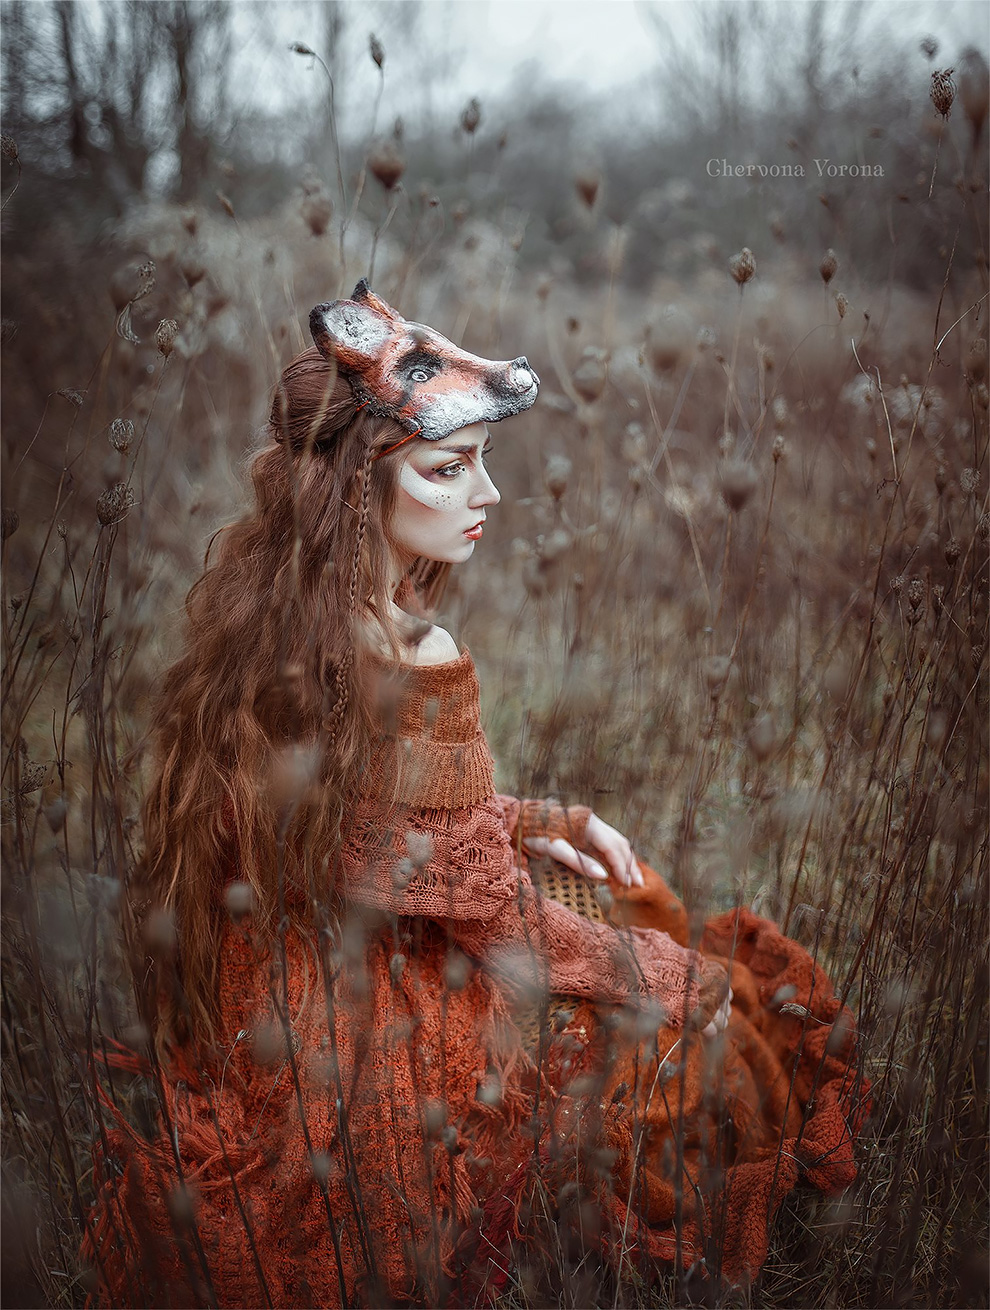 This Ukrainian Photographer Captures A Fairytale Photo Masterpieces 11 This Ukrainian Photographer Captures A Fairytale Photo Masterpieces